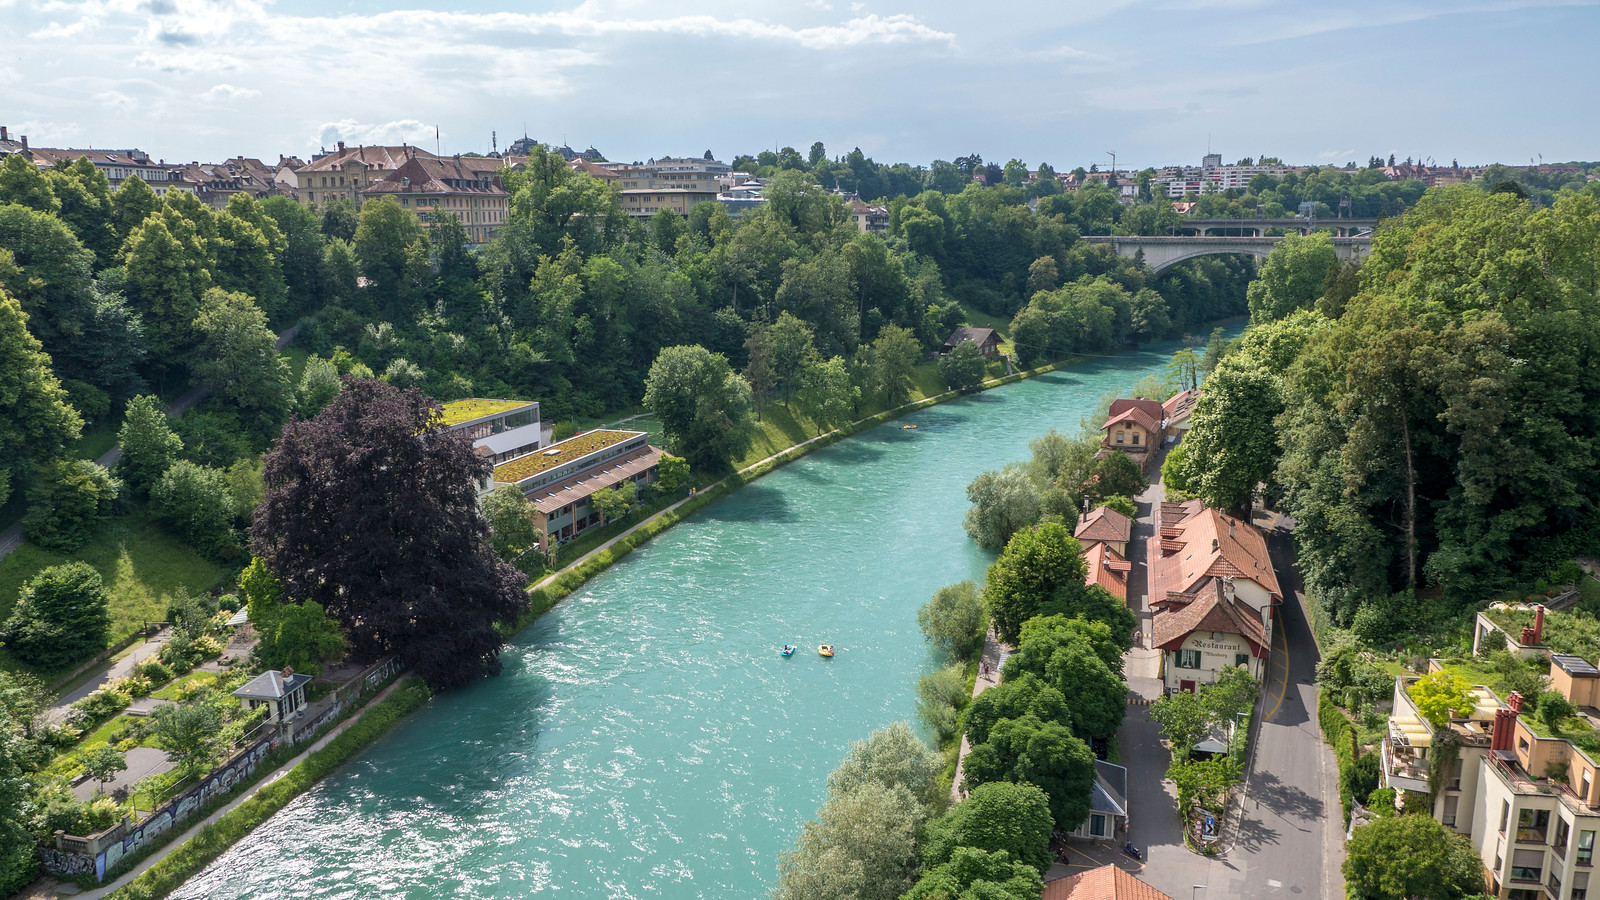 5 Spectacular Things to Do in Bern Switzerland - Tubing down River Aare